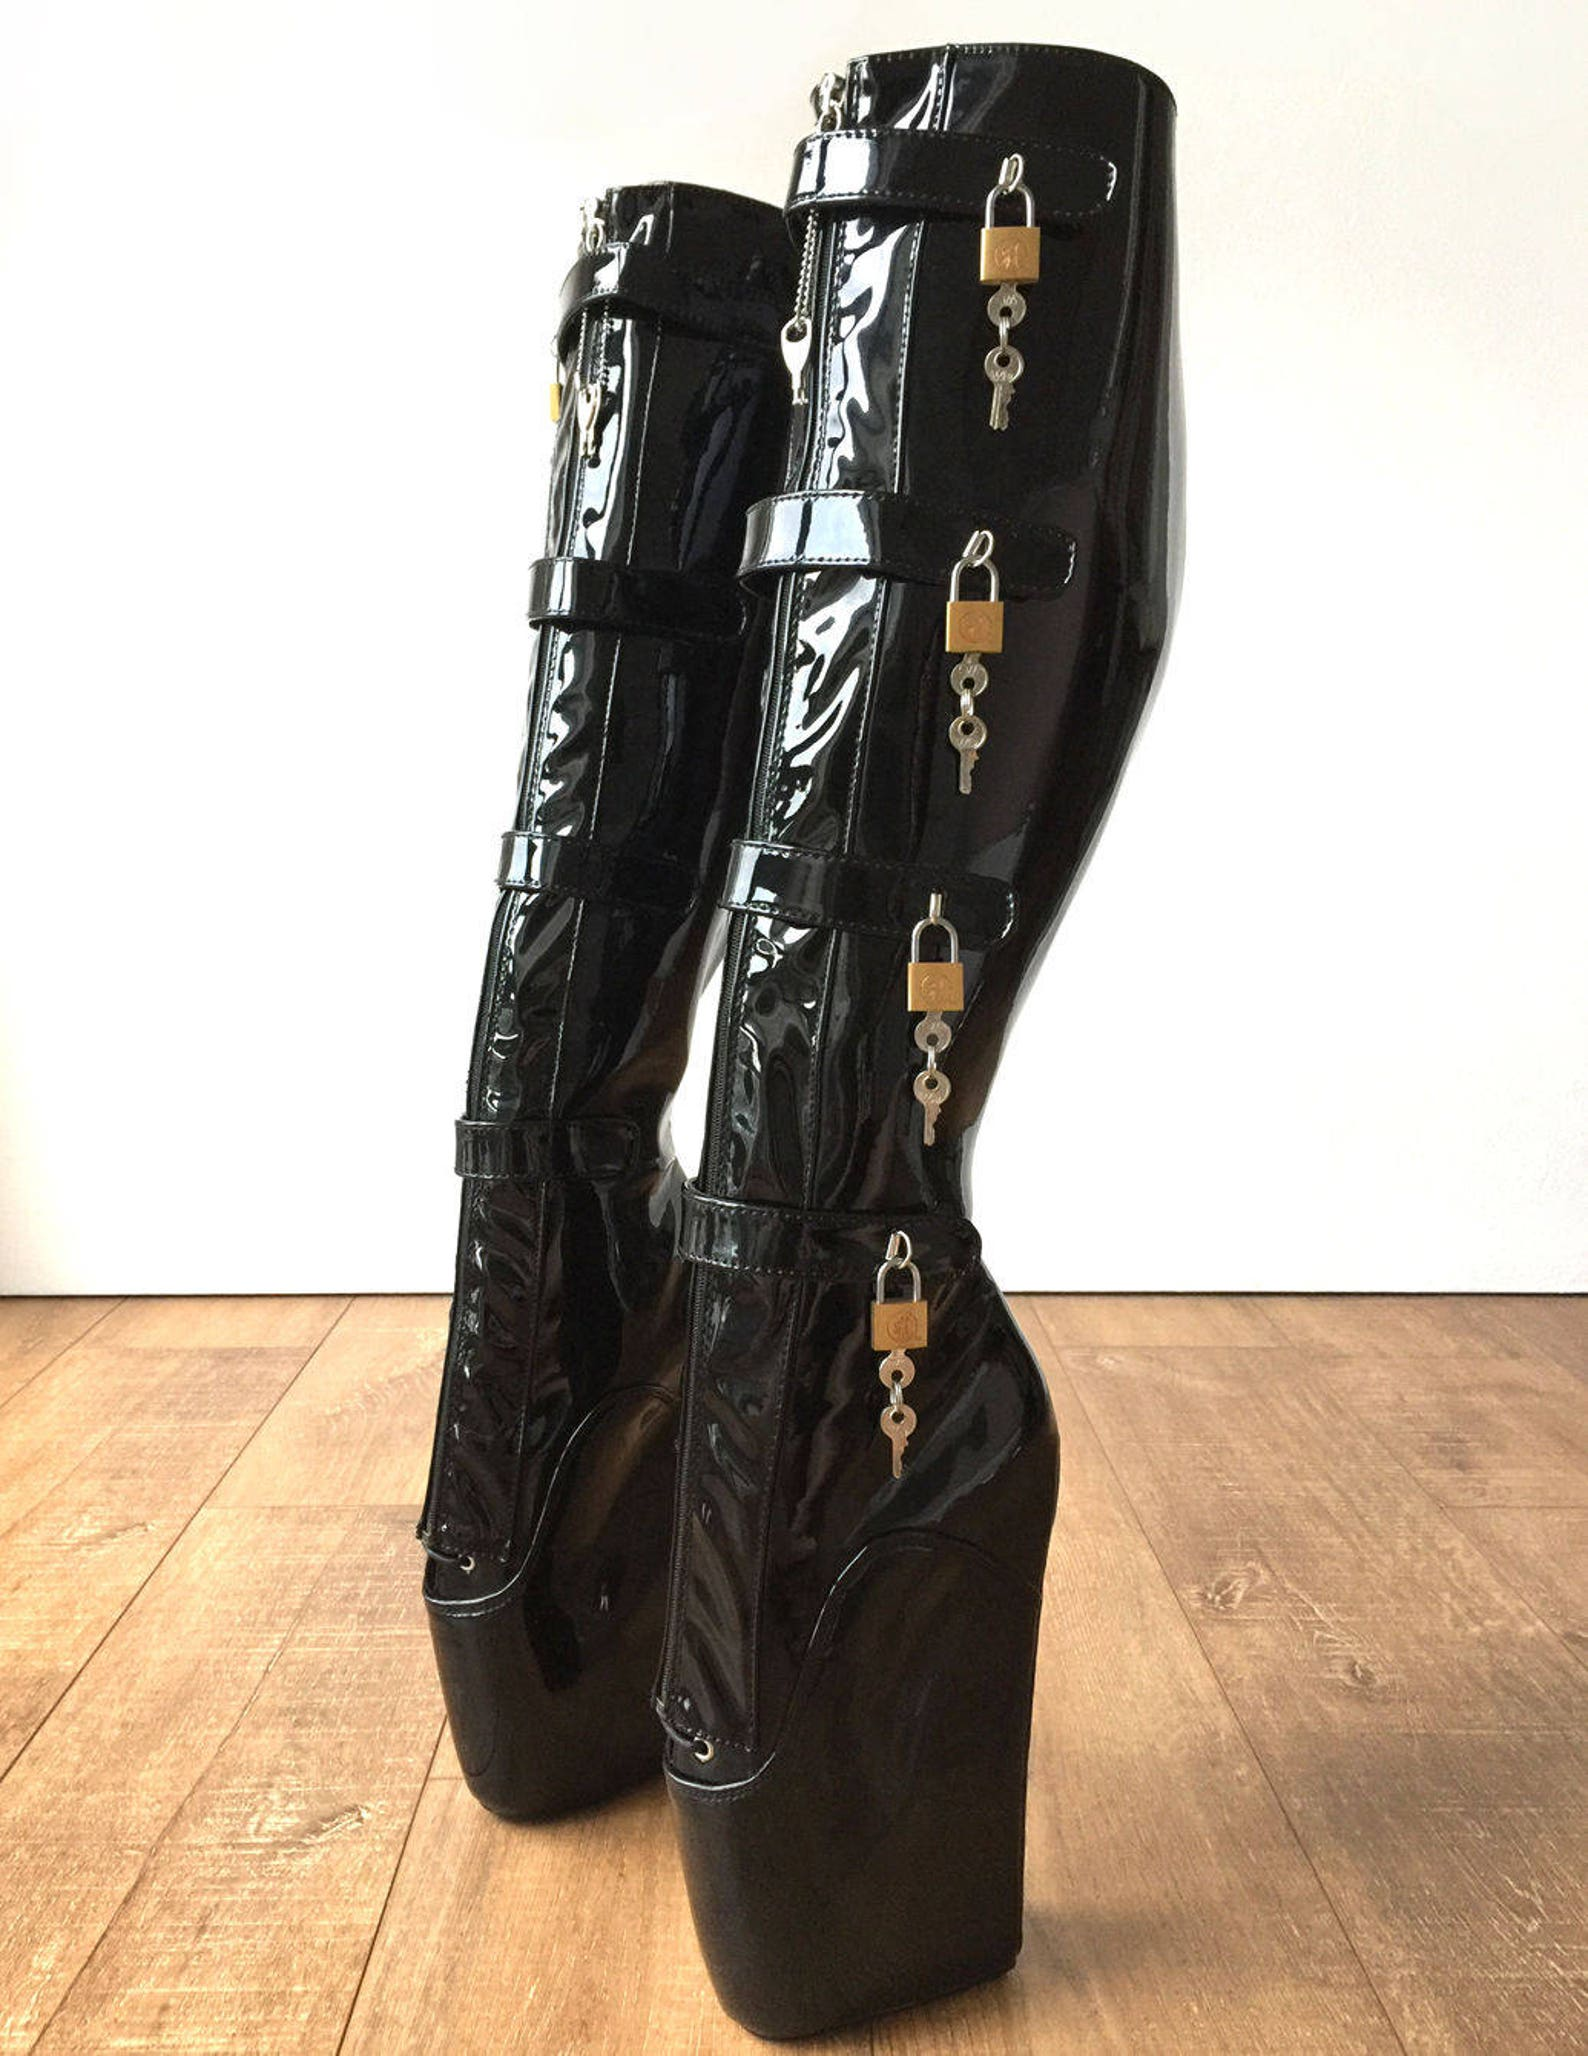 18cm 10 keys lockable beginner ballet wedge boots hoof heelless fetish slave